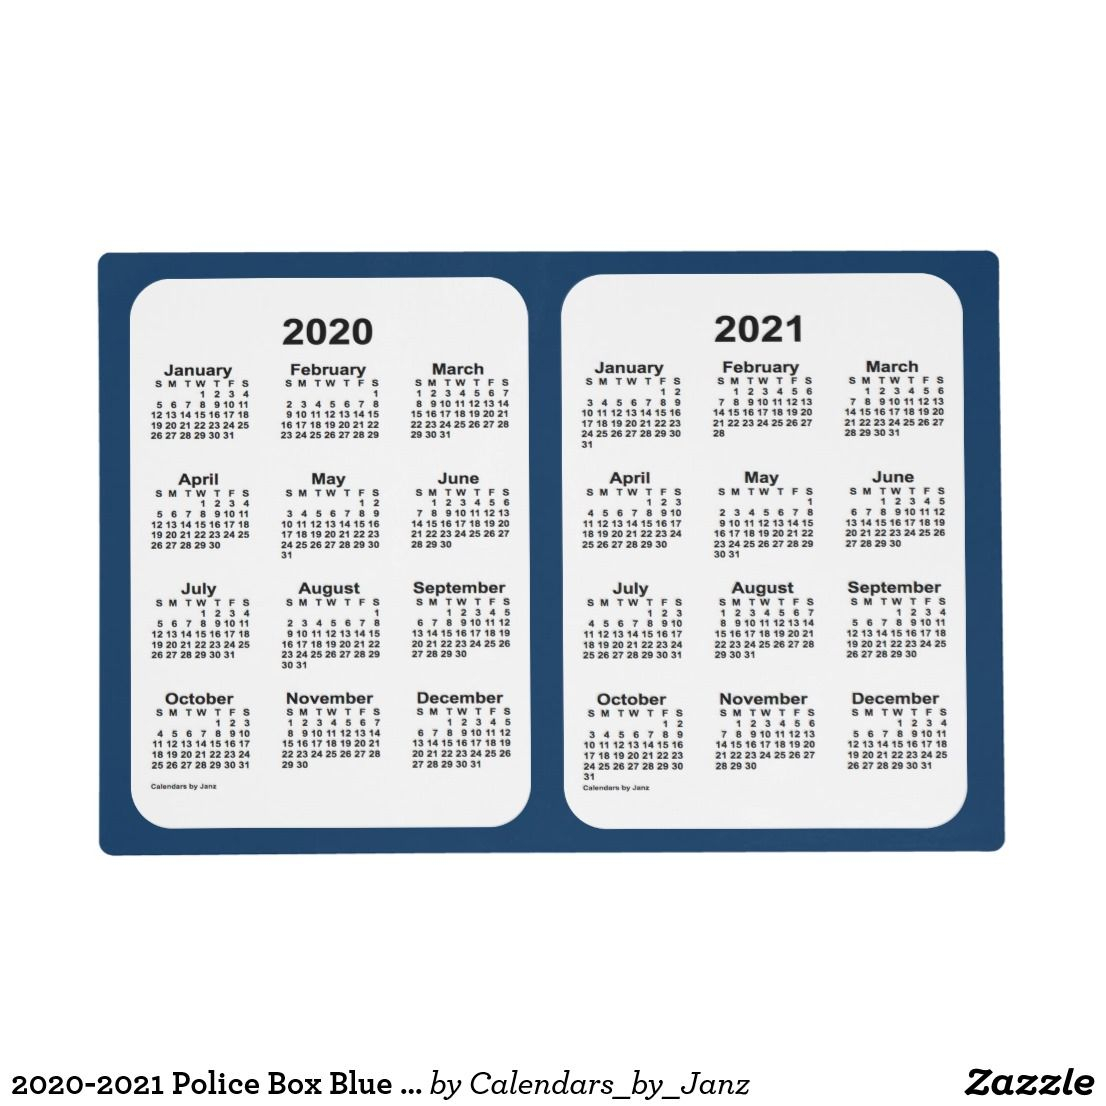 2020-2021 Police Box Blue 2 Year Calendar By Janz Placemat